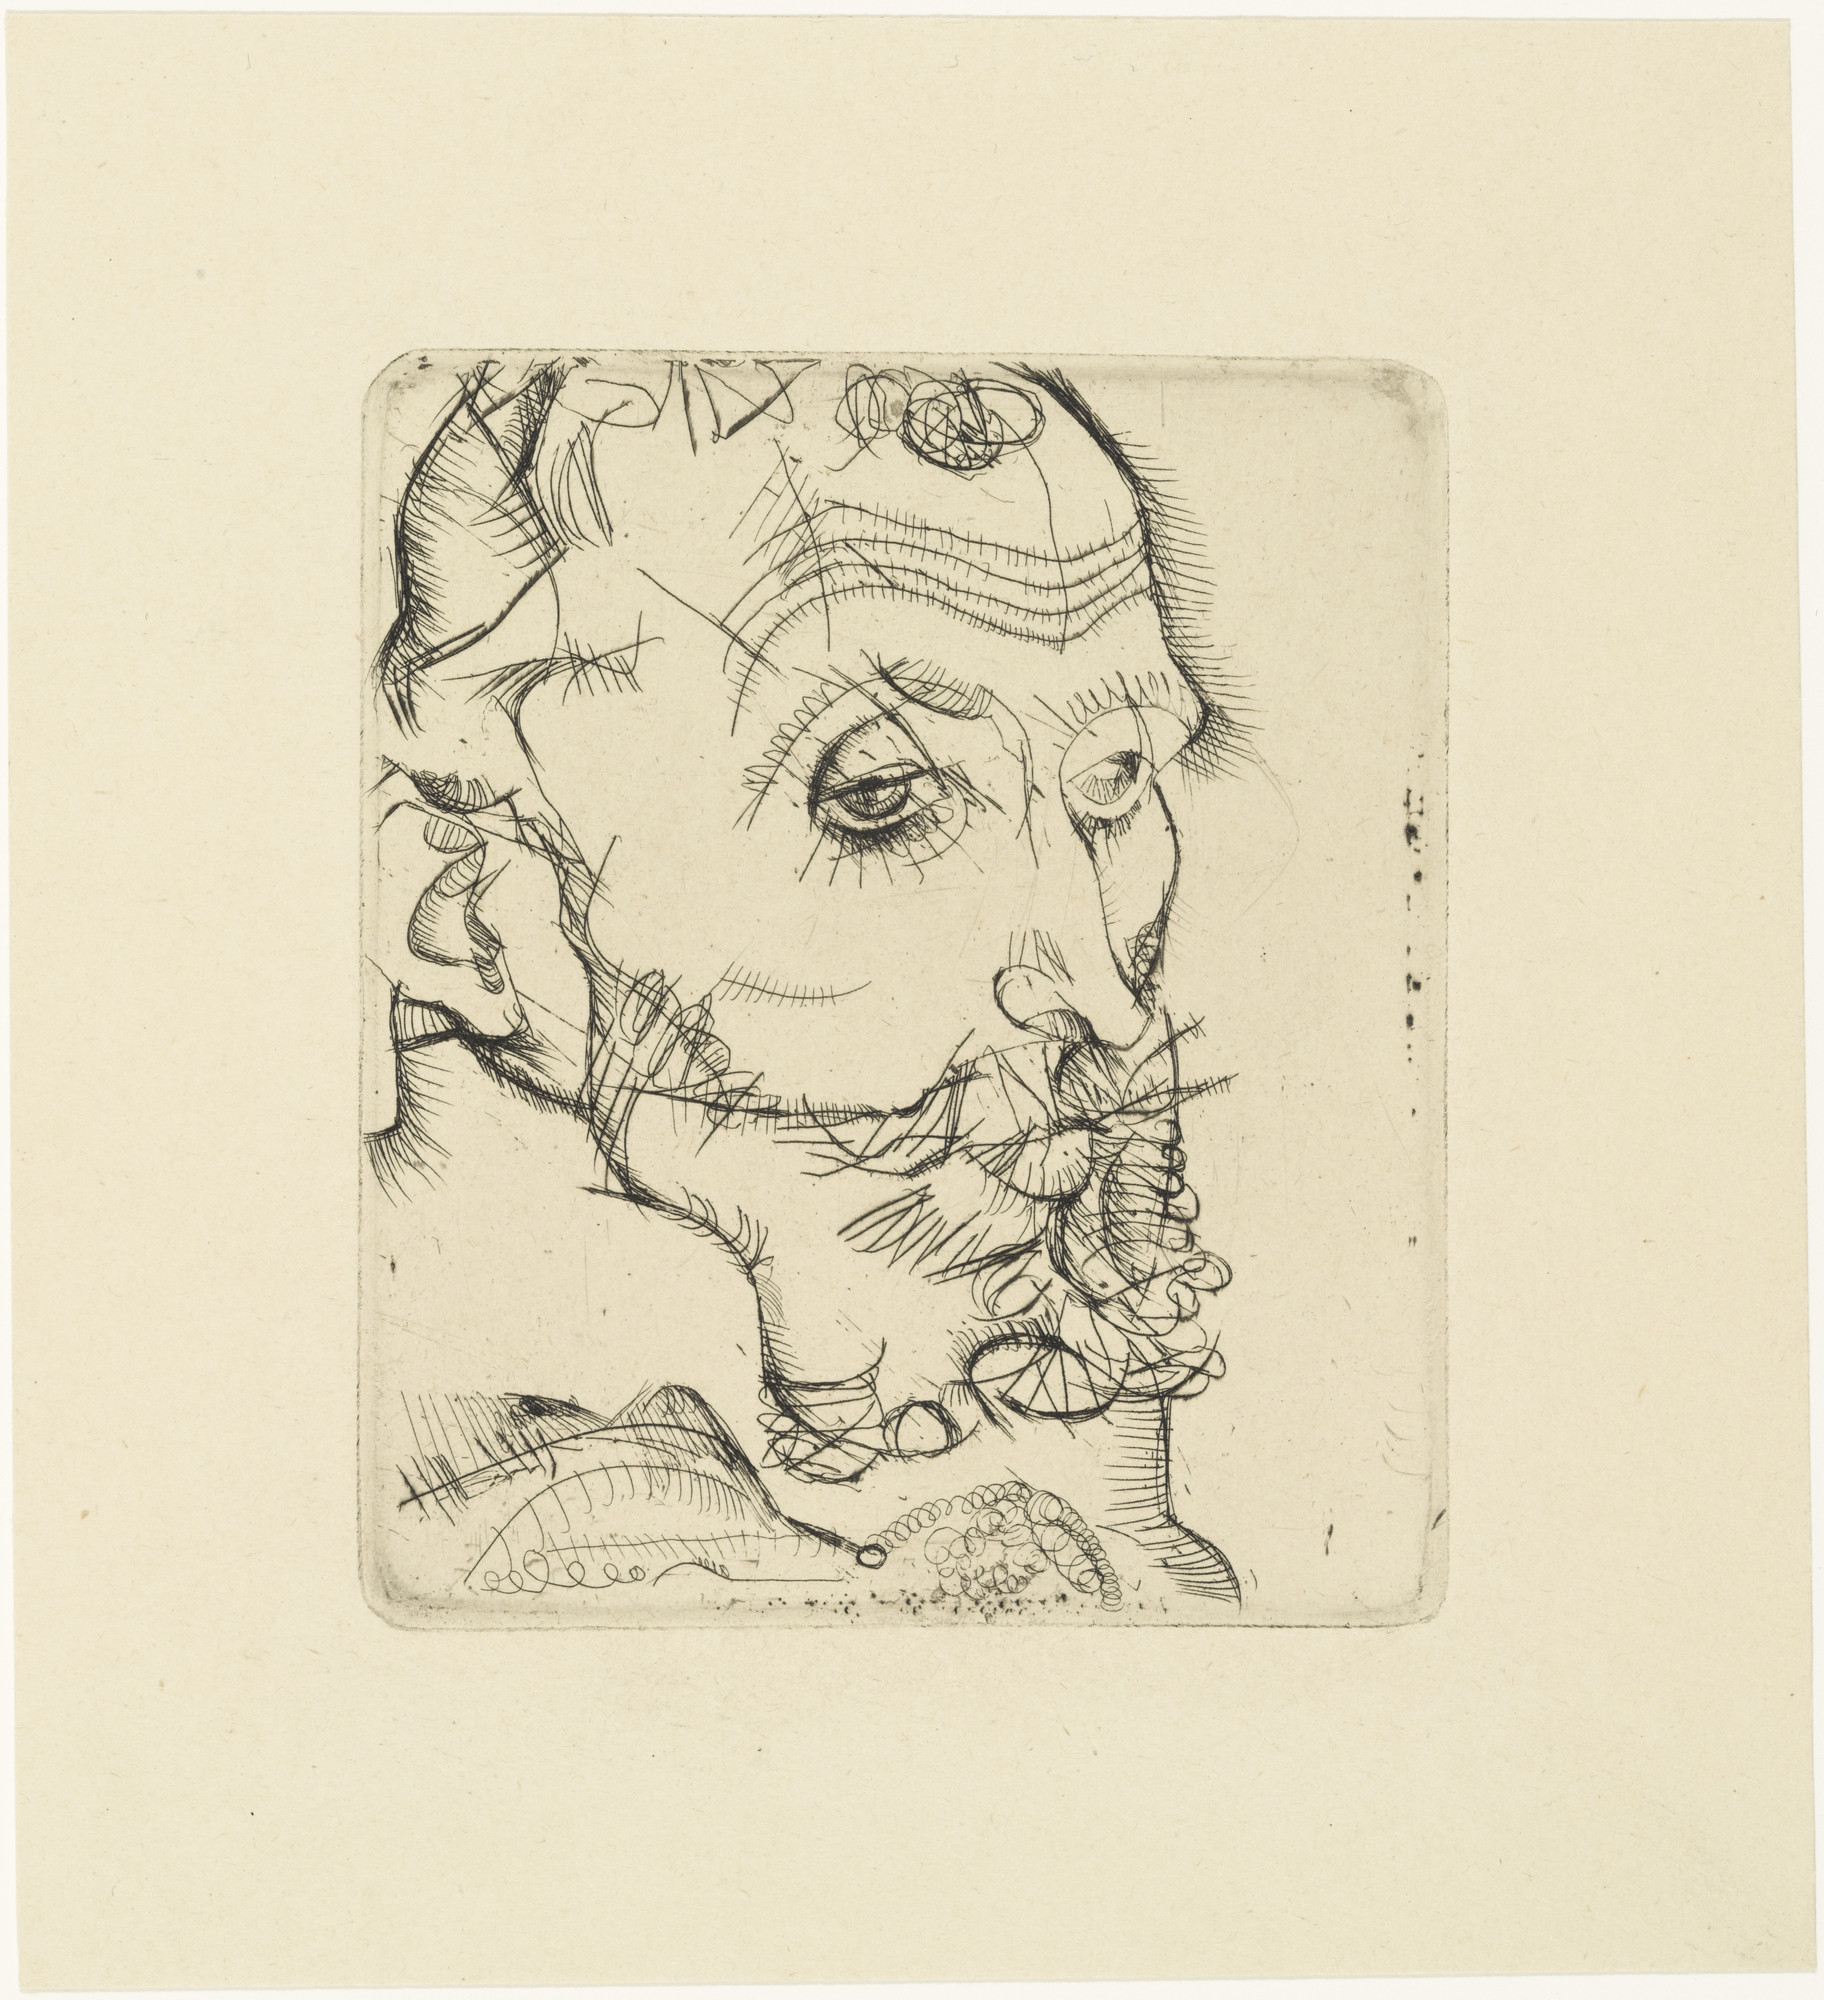 Egon Schiele. Portrait of Franz Hauer (Bildnis Franz Hauer) from The Graphic Work of Egon Schiele (Das Graphische Werk von Egon Schiele). (1914, published 1922)